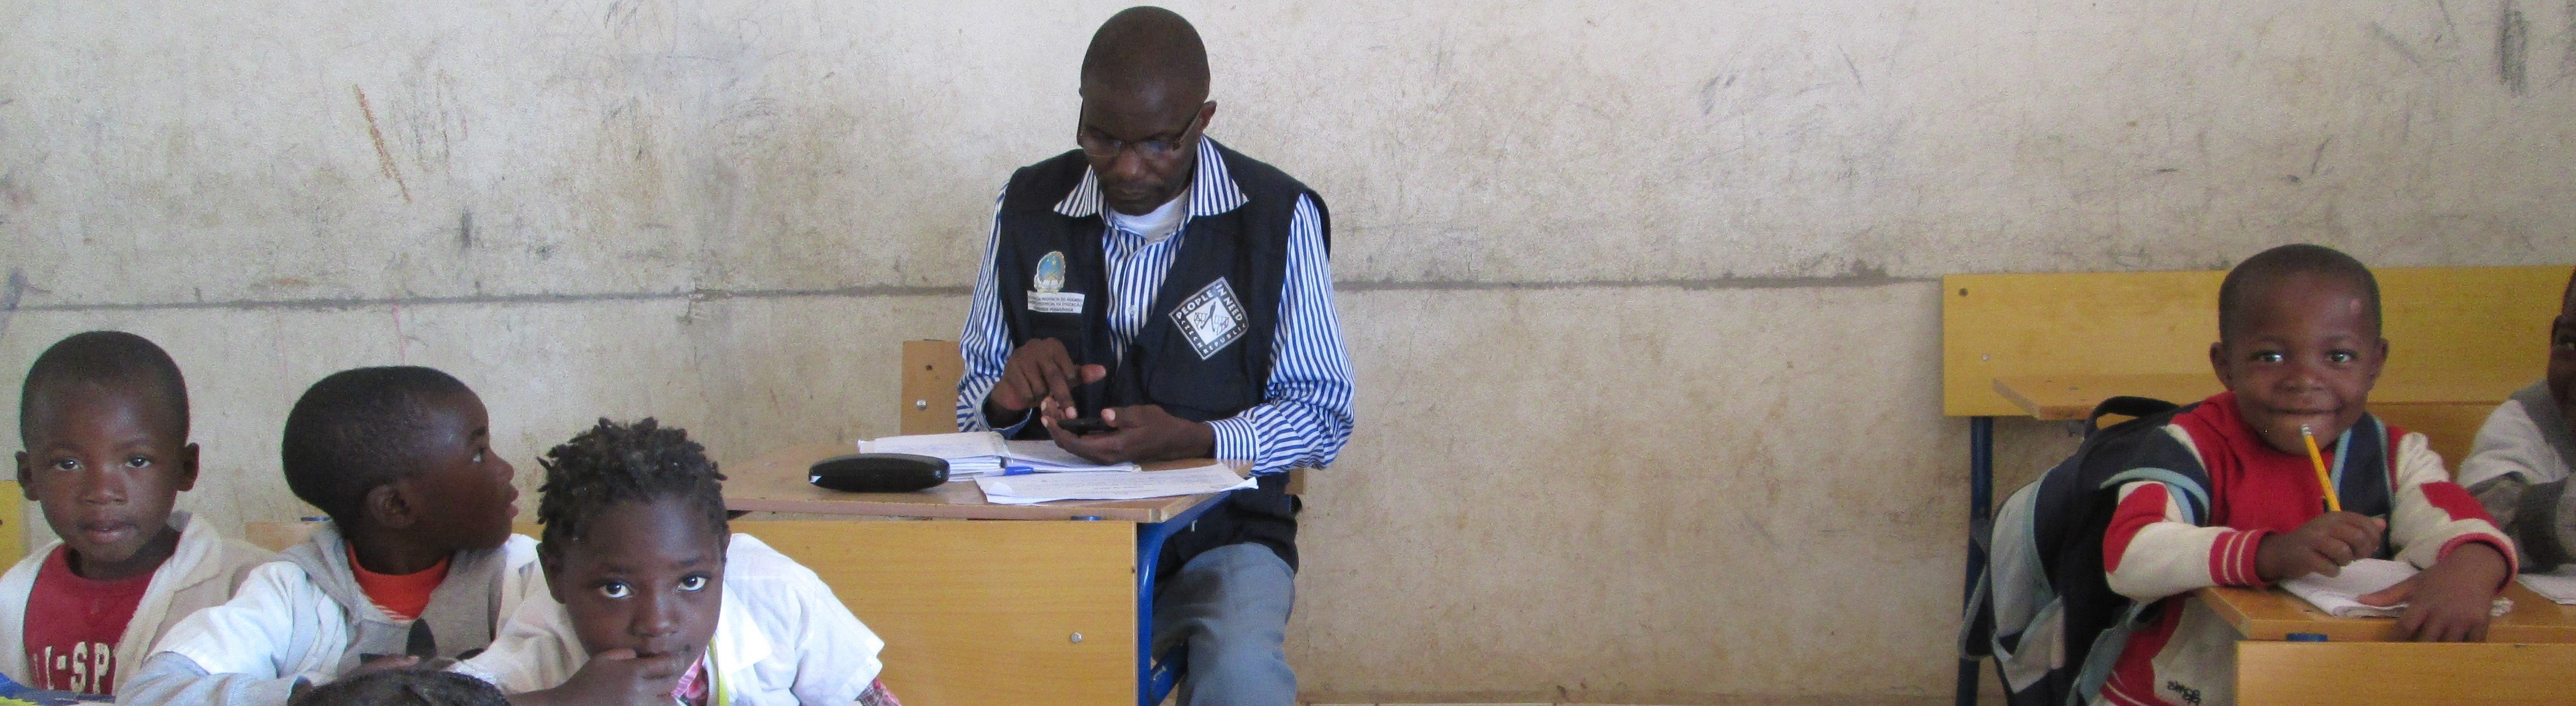 People in Need's EMA App is Improving Education in Angola